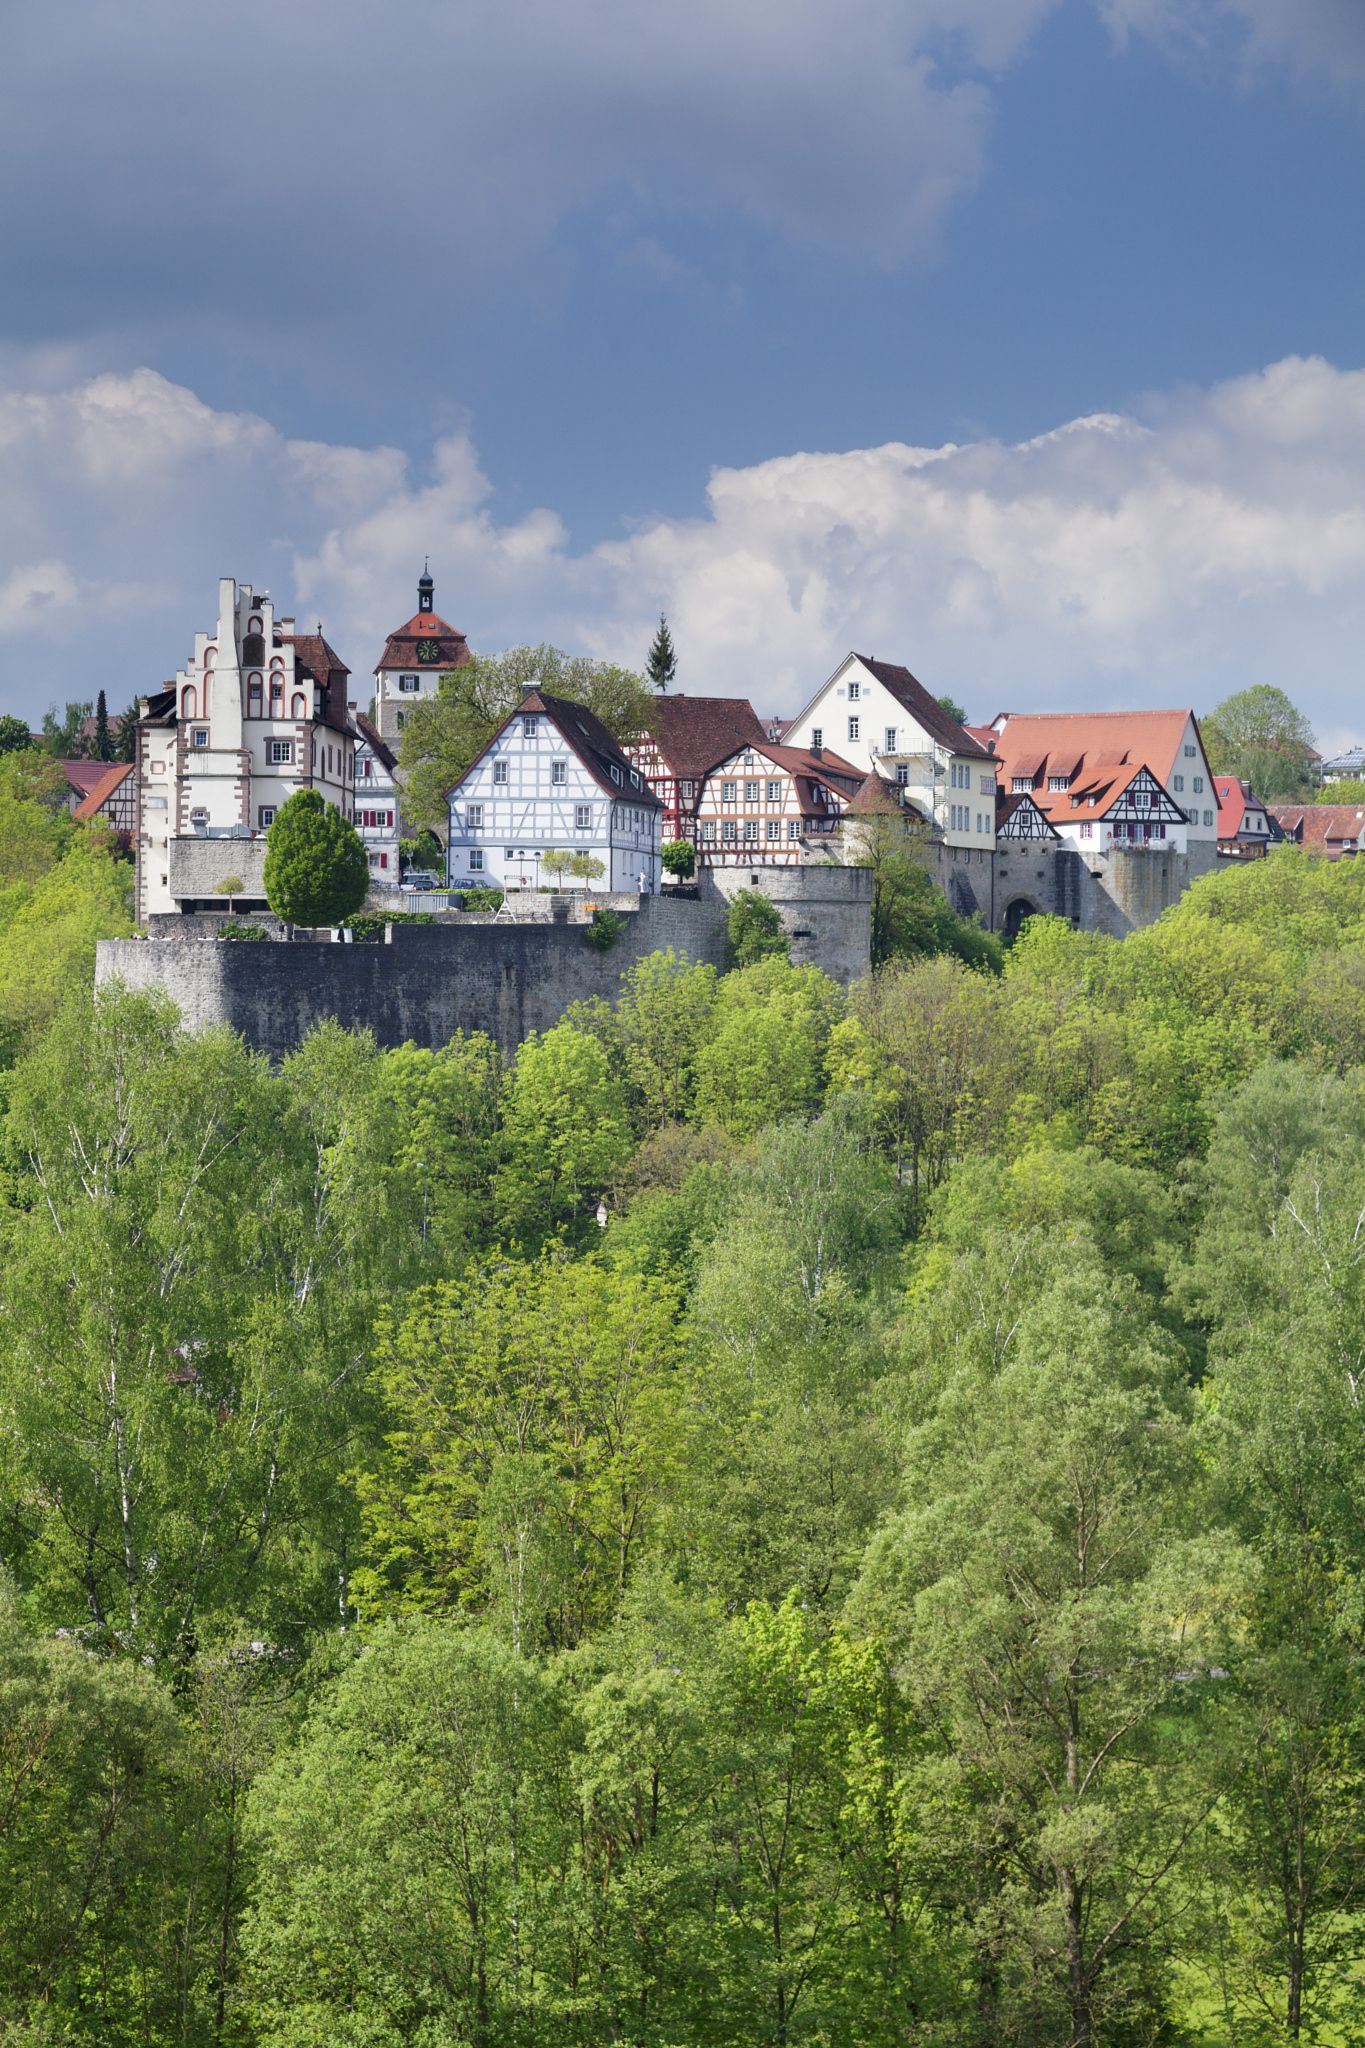 Vellberg Castle With Old Town Vellberg Hohenlohe Region Baden Wurttemberg Germany Europe Germany Old Town